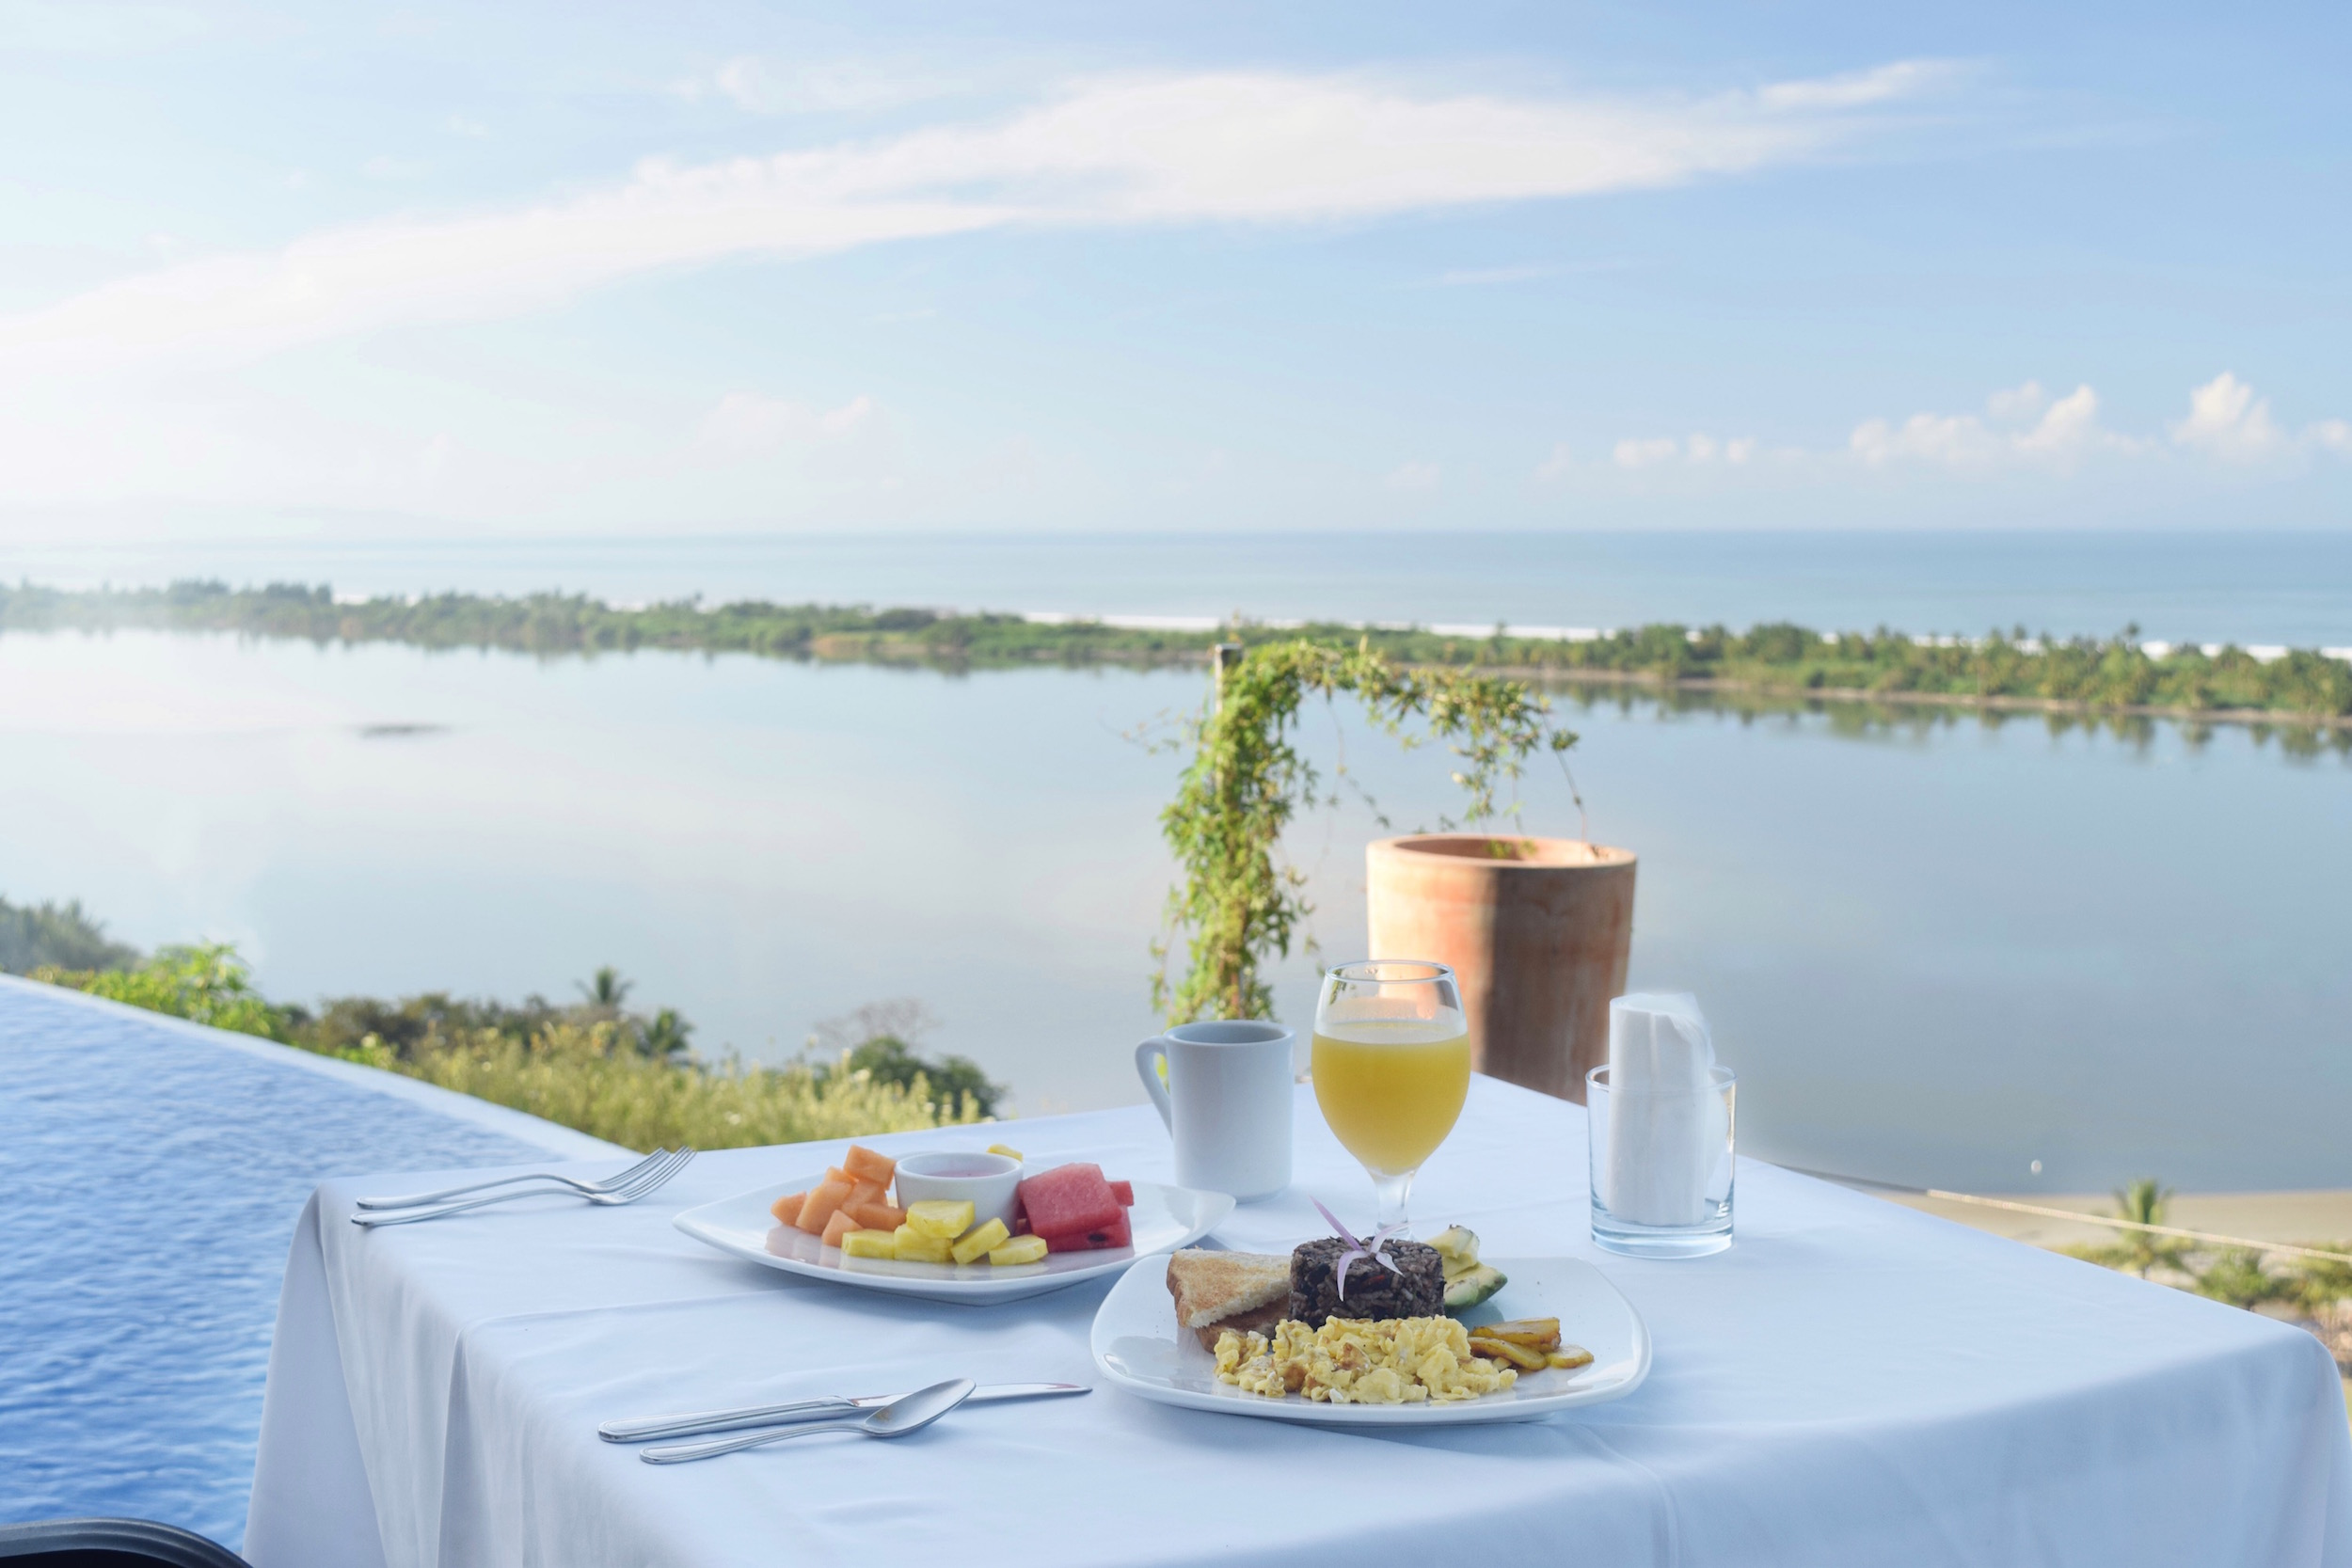 One of the best hotels in Costa Rica, El Castillo has amazing views for breakfast.  Tessa Juliette - Travel Where to Next http://travelwheretonext.com